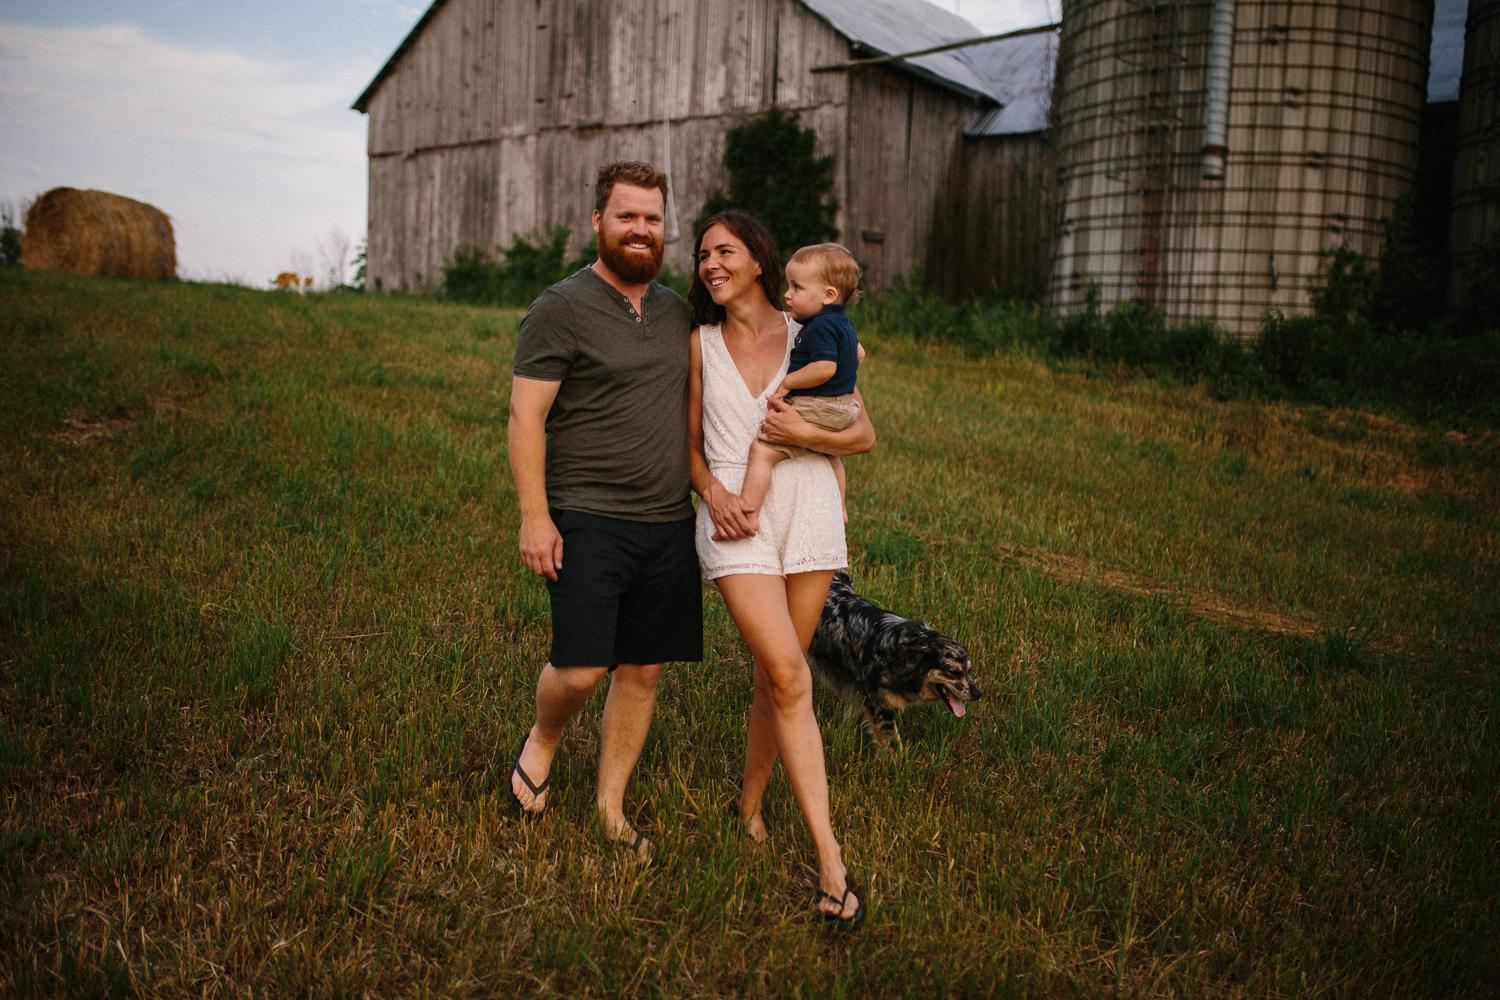 lanark highlands farm family photo session - kerry ford photography-046.jpg